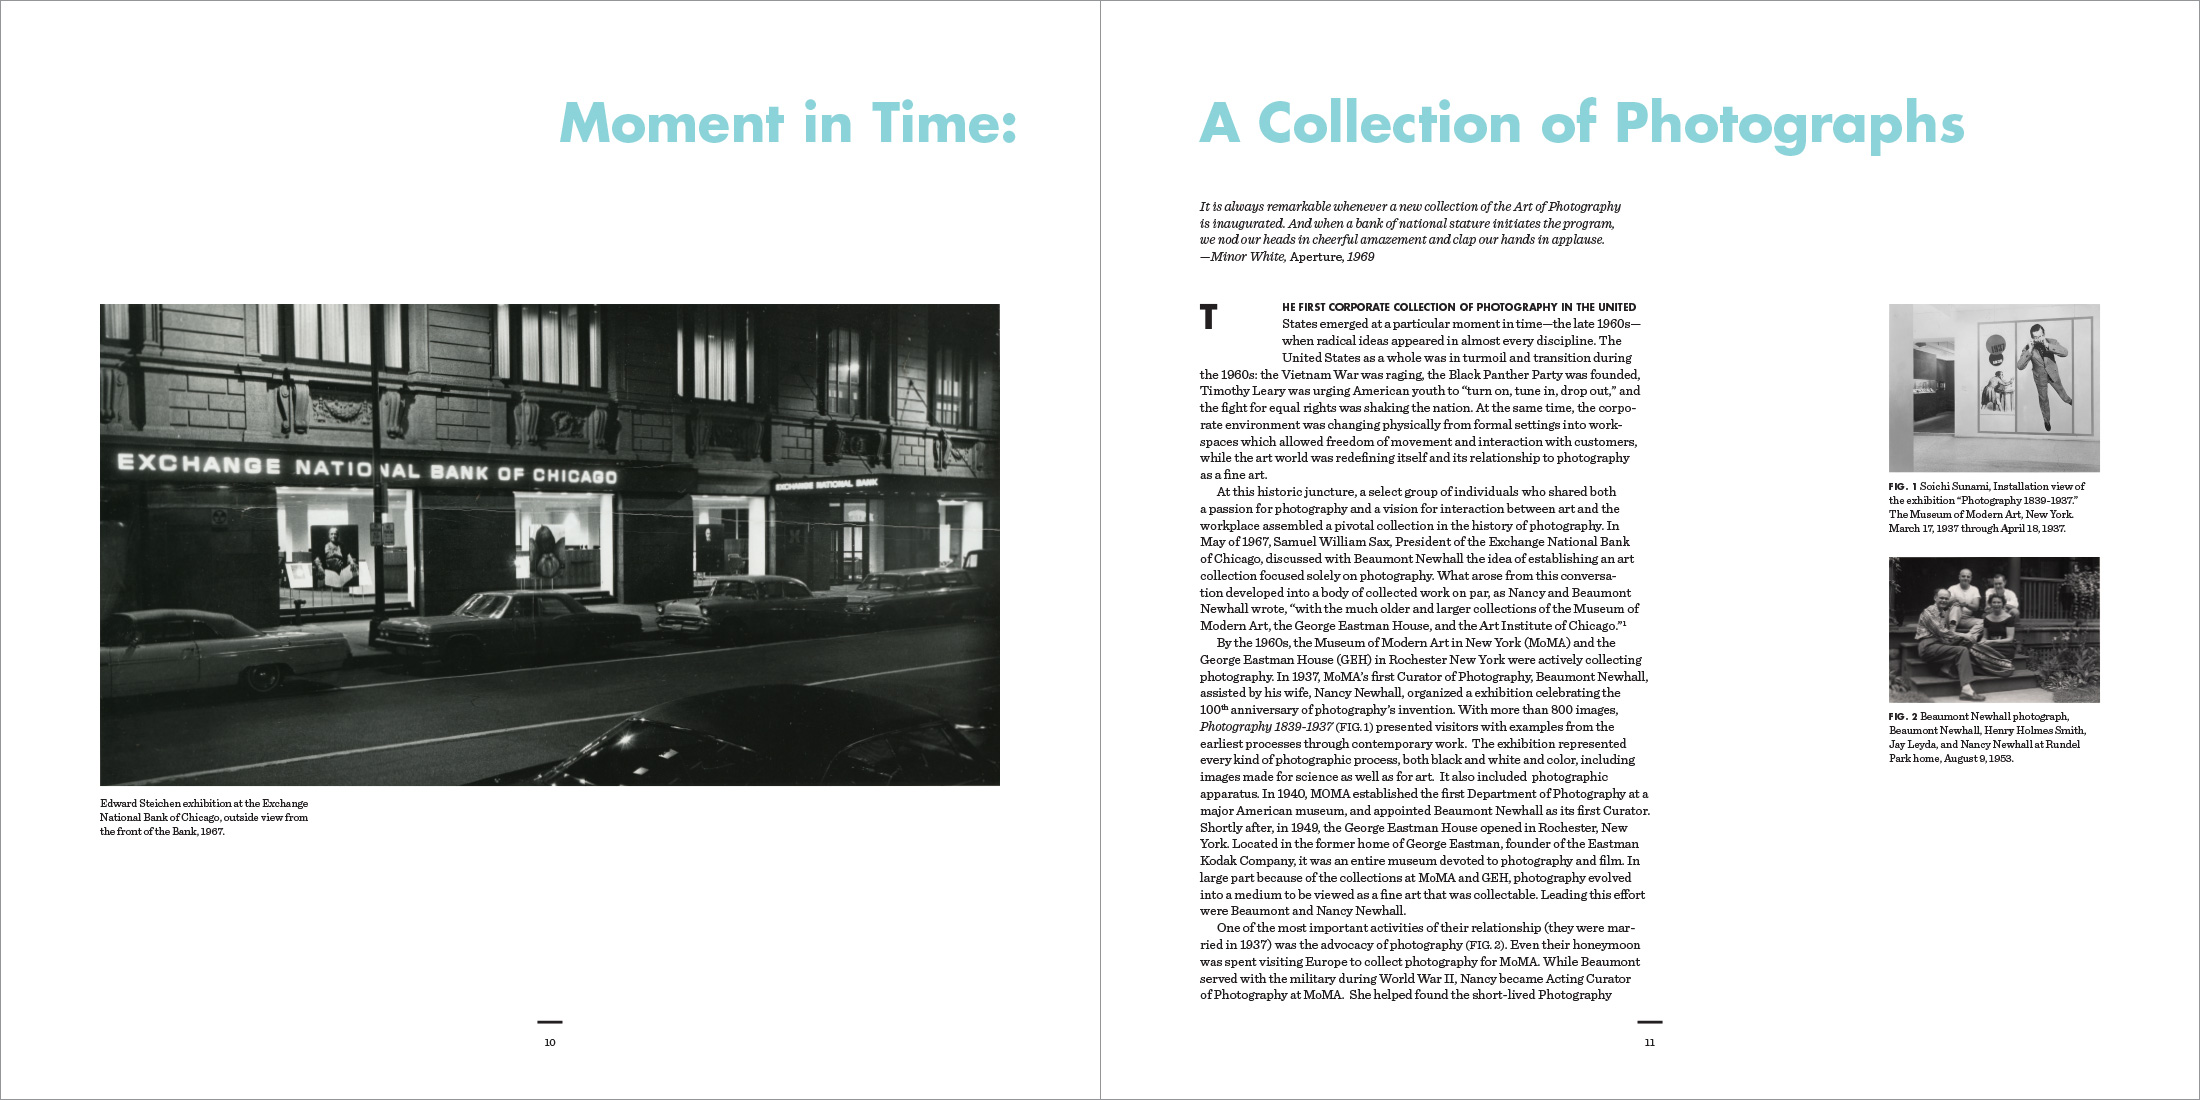 Moment in Time: A Collection of Photographs